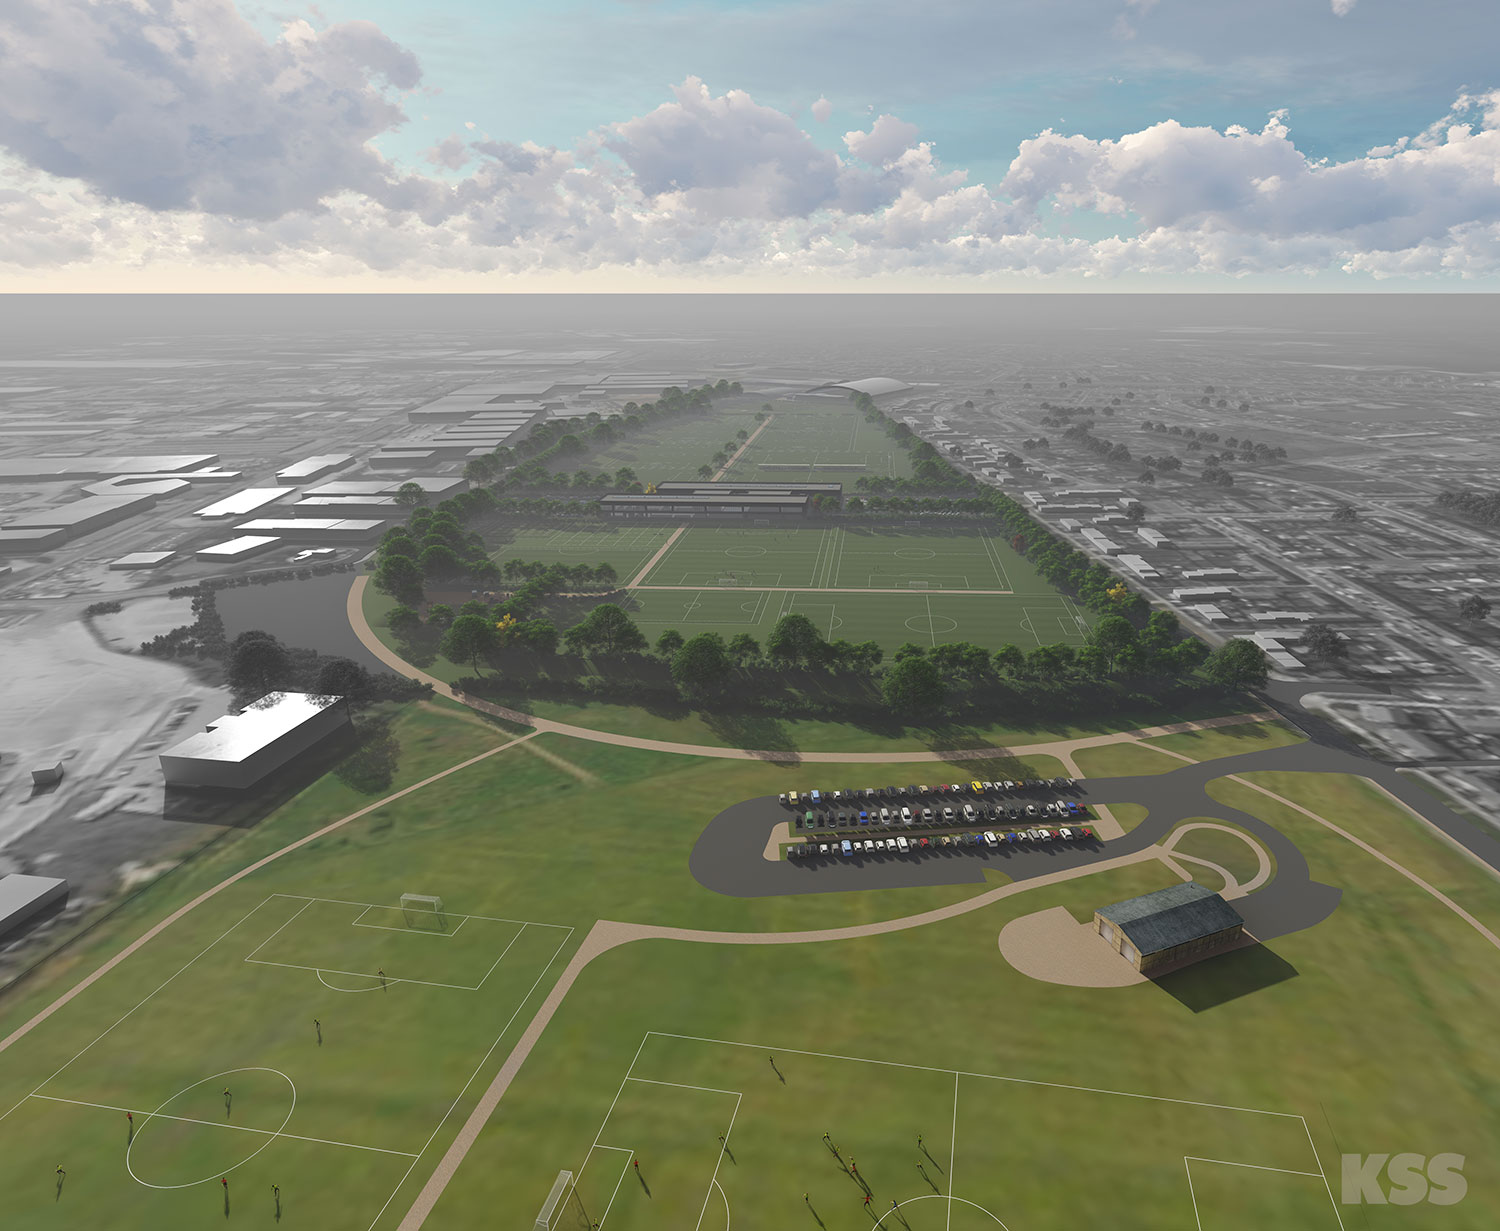 New LFC Academy site expansion